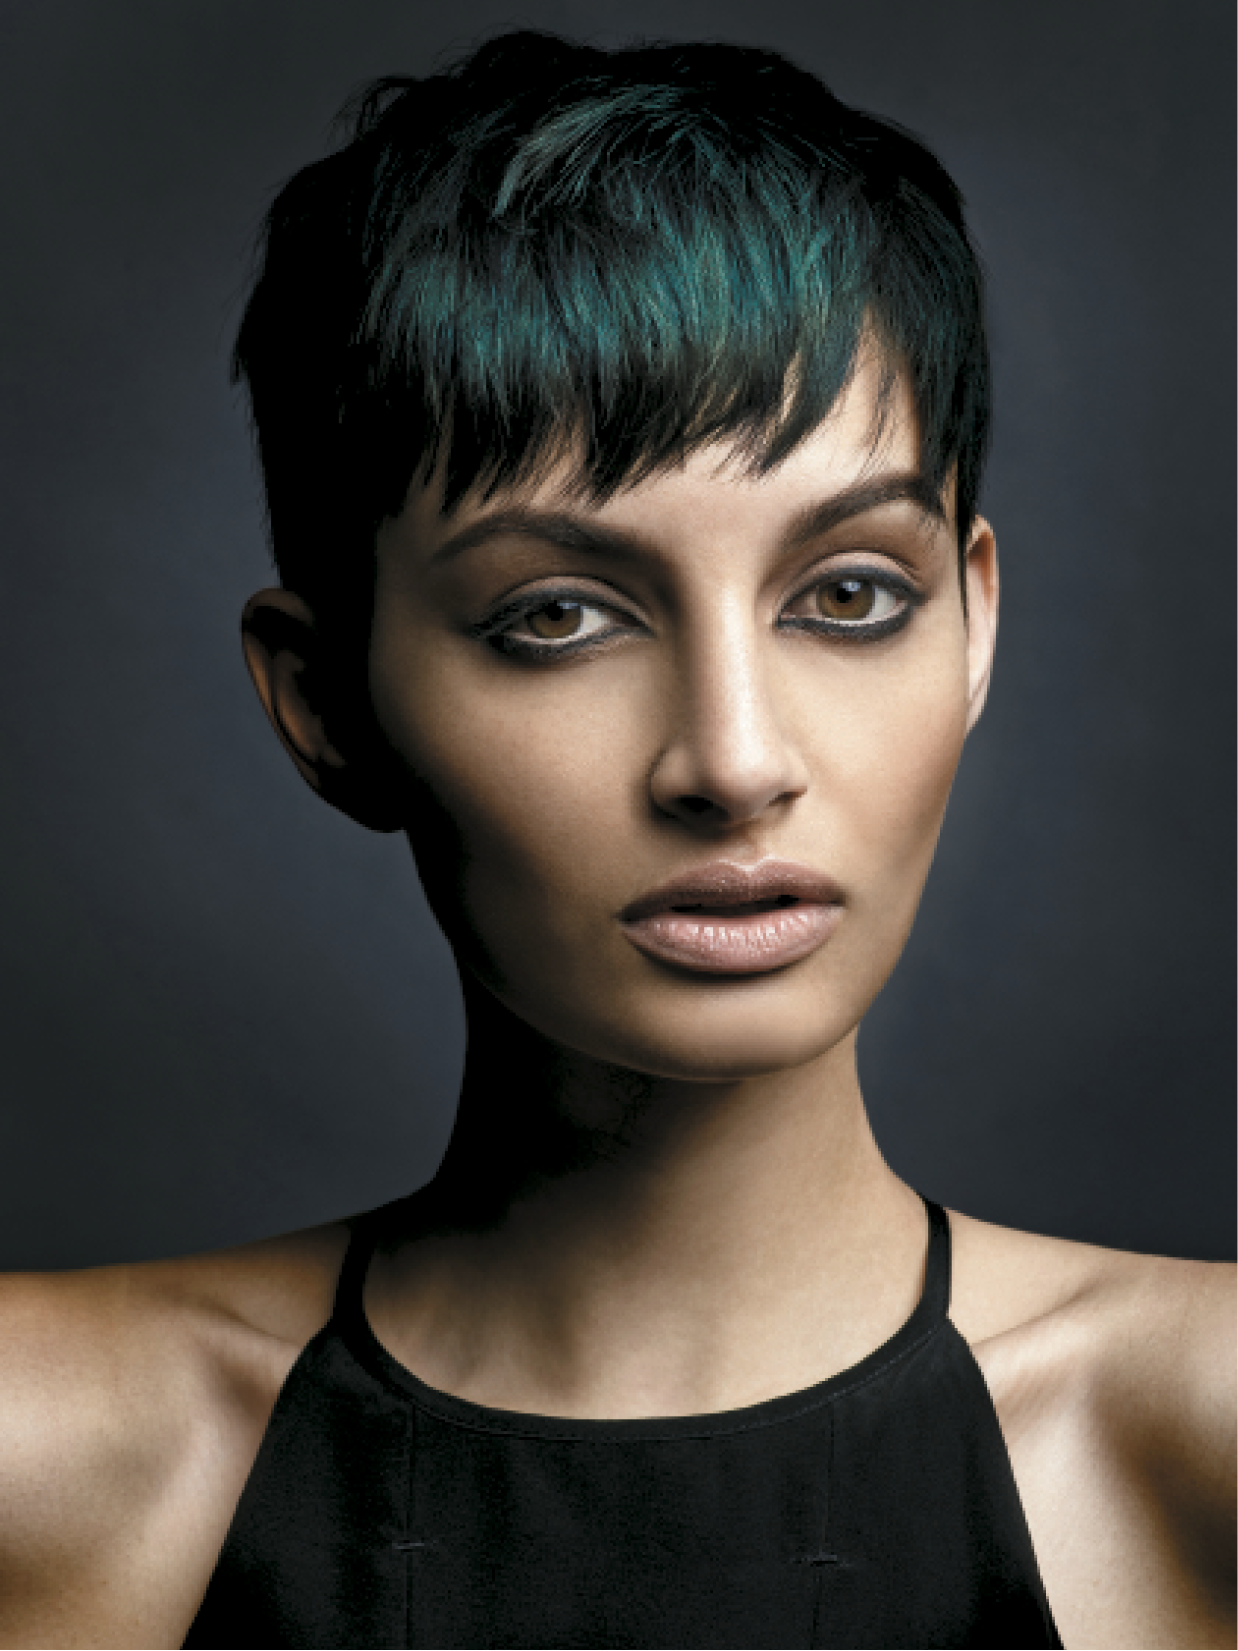 Using two prism sections through the fringe area, Baxter lightened the ends and isolated them with foil or mesh and applied a cool, dark global color to the remaining hair. He rinsed hair and applied a deep turquoise hue to create a seamless look with no visible sectioning pattern.